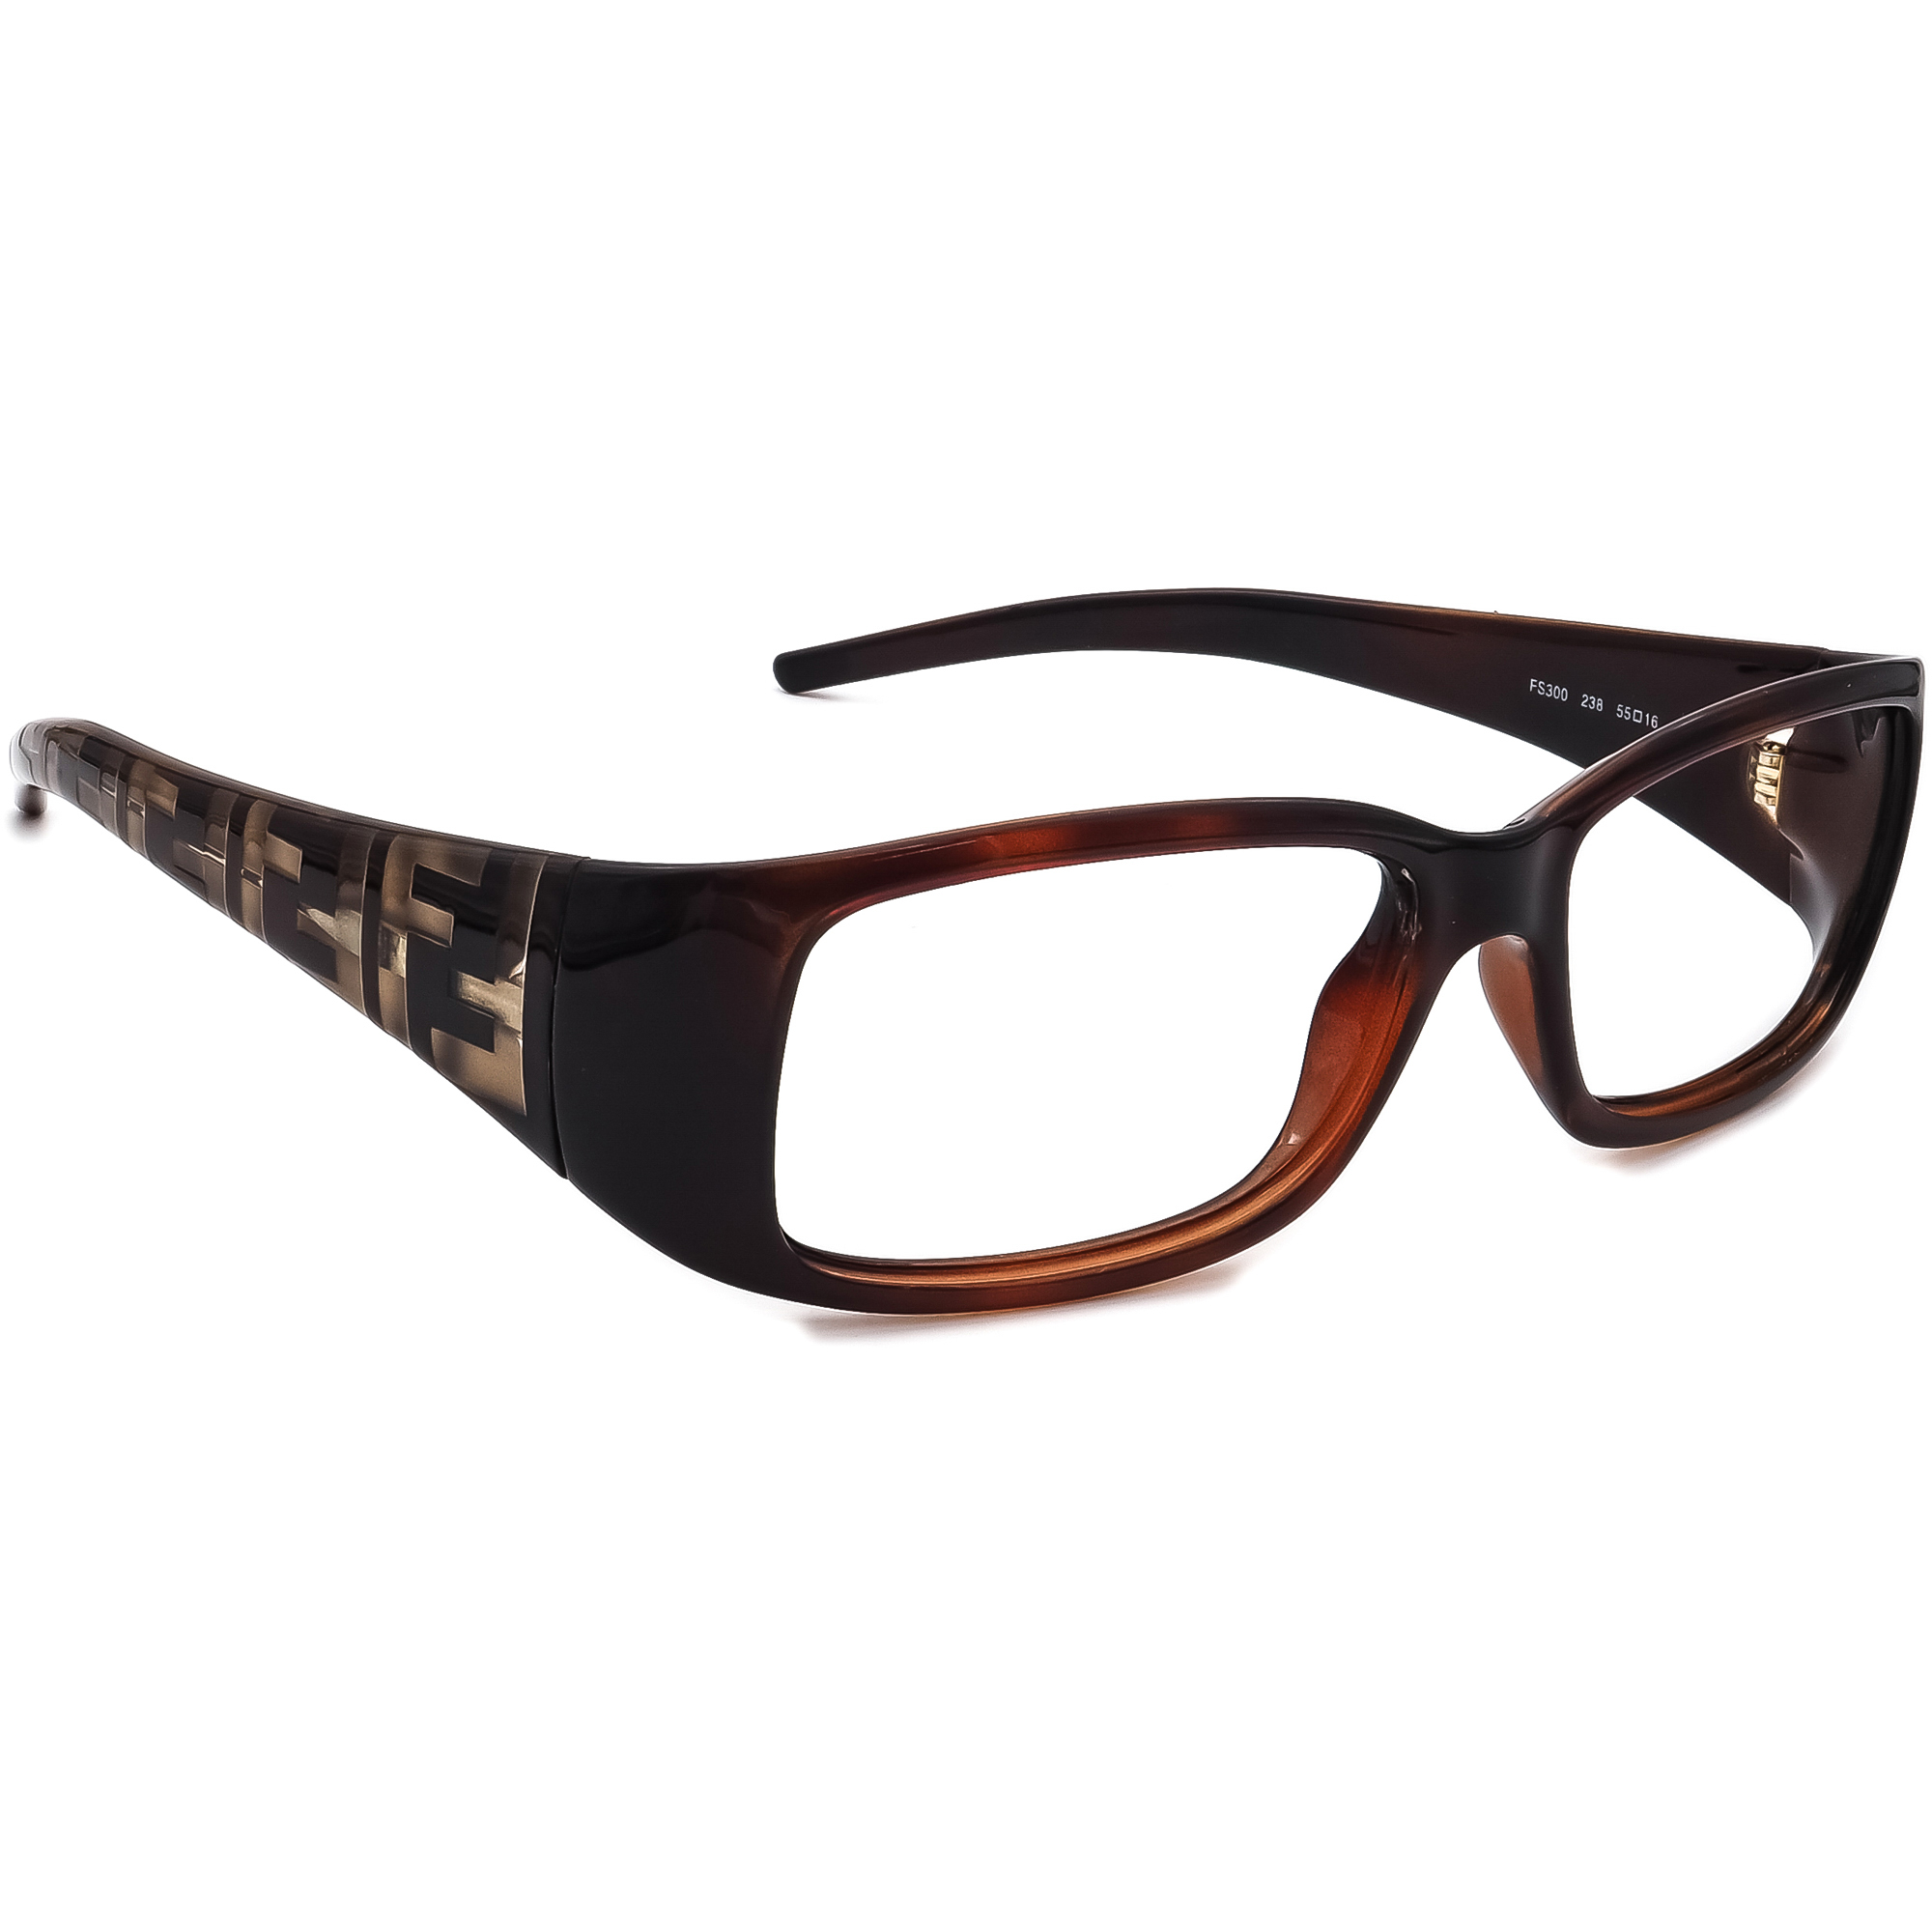 Fendi FS300 238 Sunglasses Frame Only